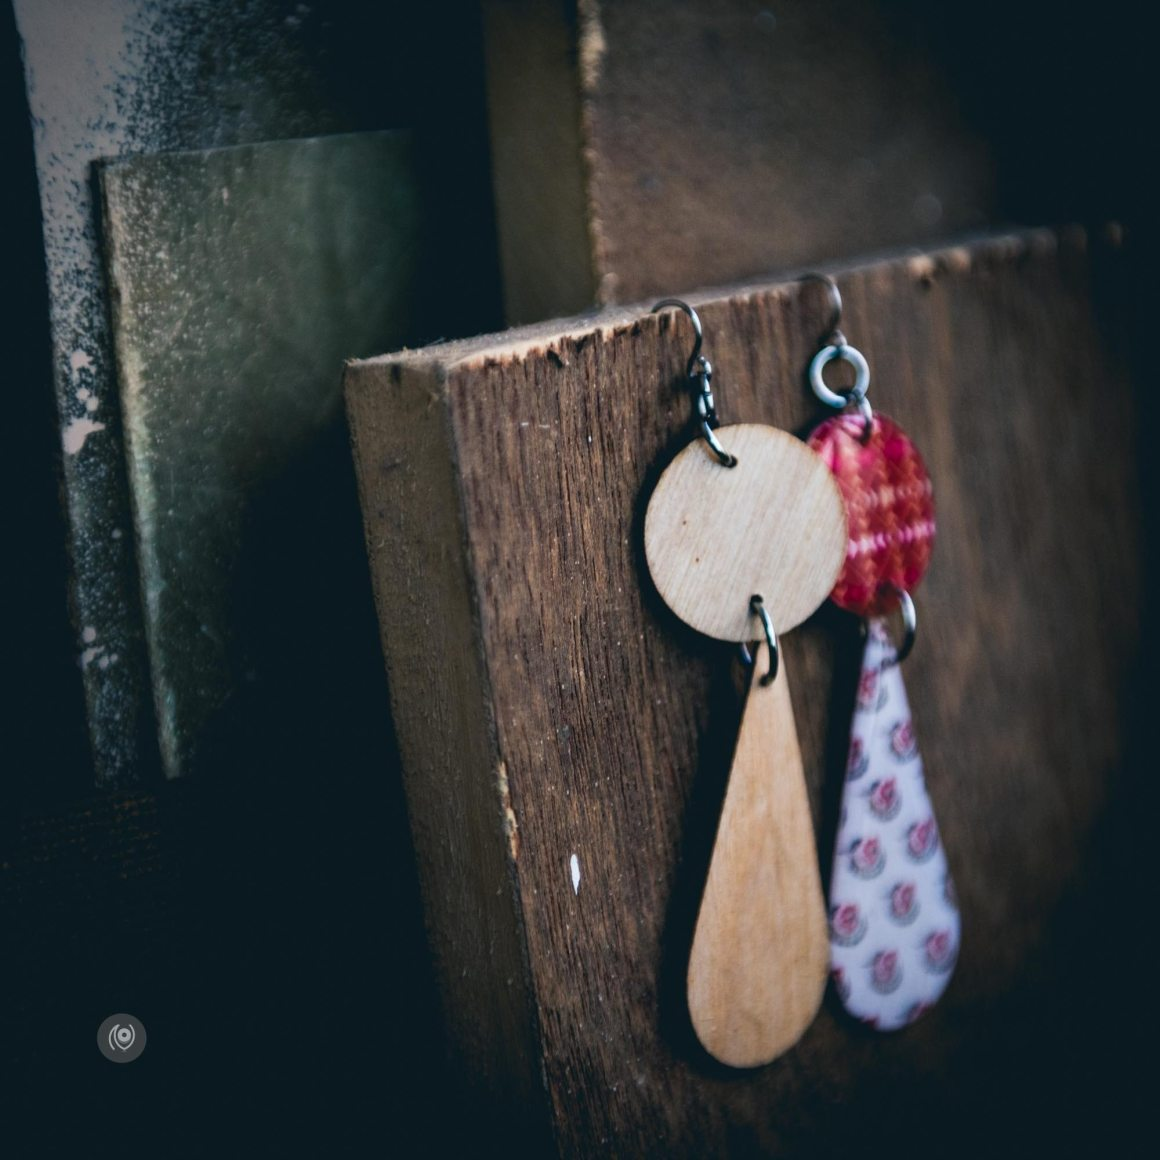 Decoupage Birch Wood ear rings by Molly D Design5 Studio, Naina.co, Naina Redhu, Luxury Photographer, Lifestyle Photographer, Luxury Blogger, Lifestyle Blogger, Experience Collector, Personal Style, #MadeInIndia